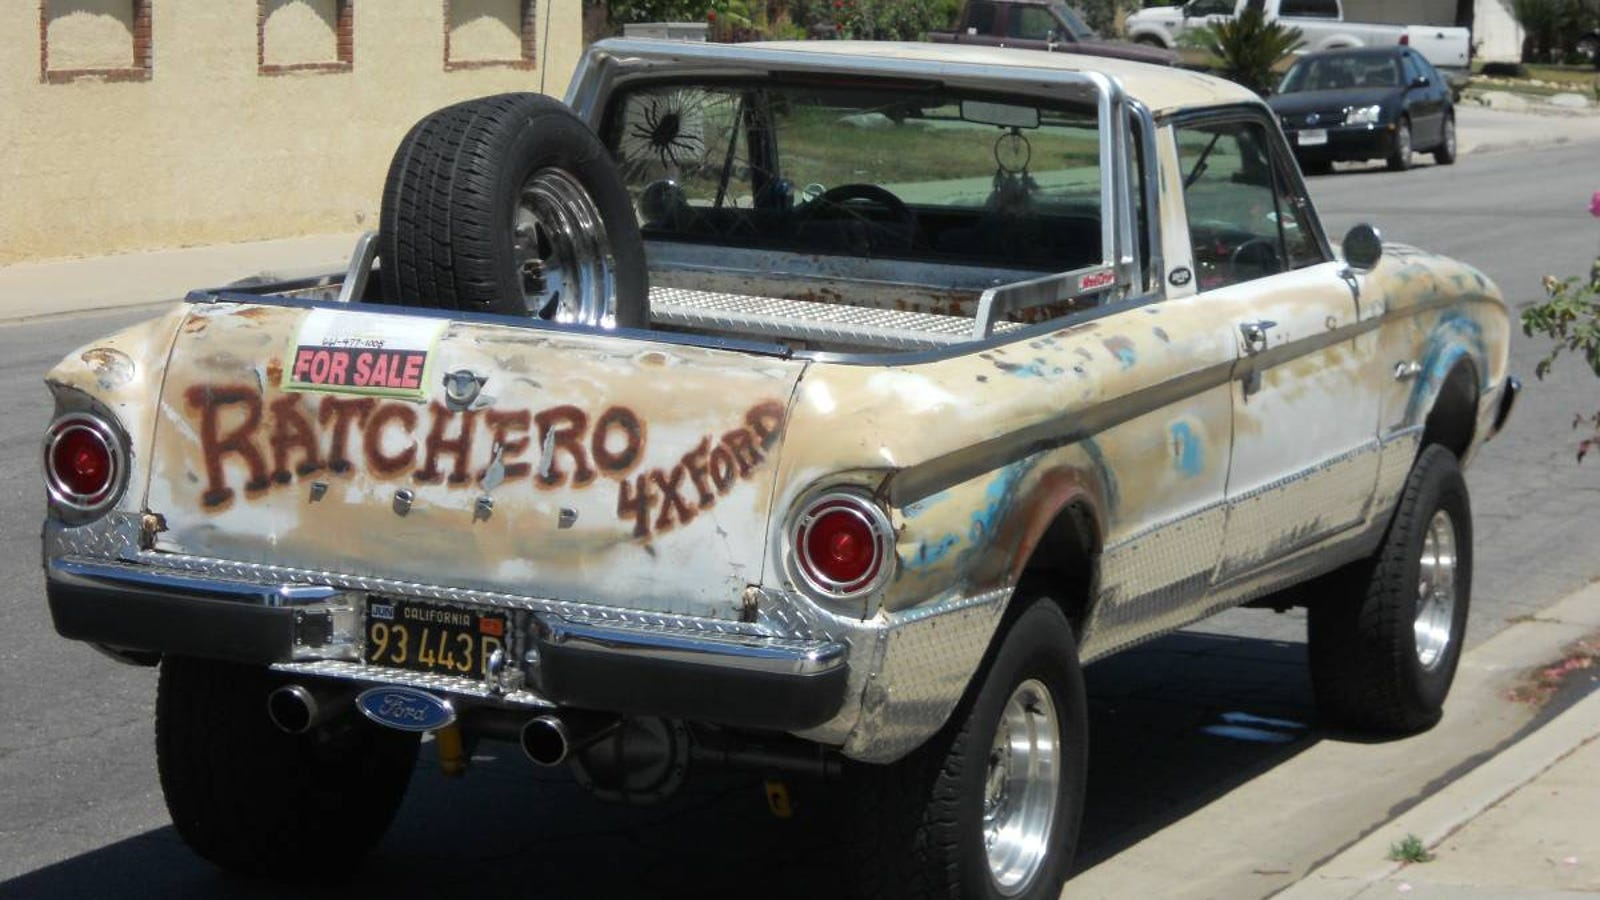 At $6,800, Could This 1961 Ranger-chero Keep You Down On The Farm?